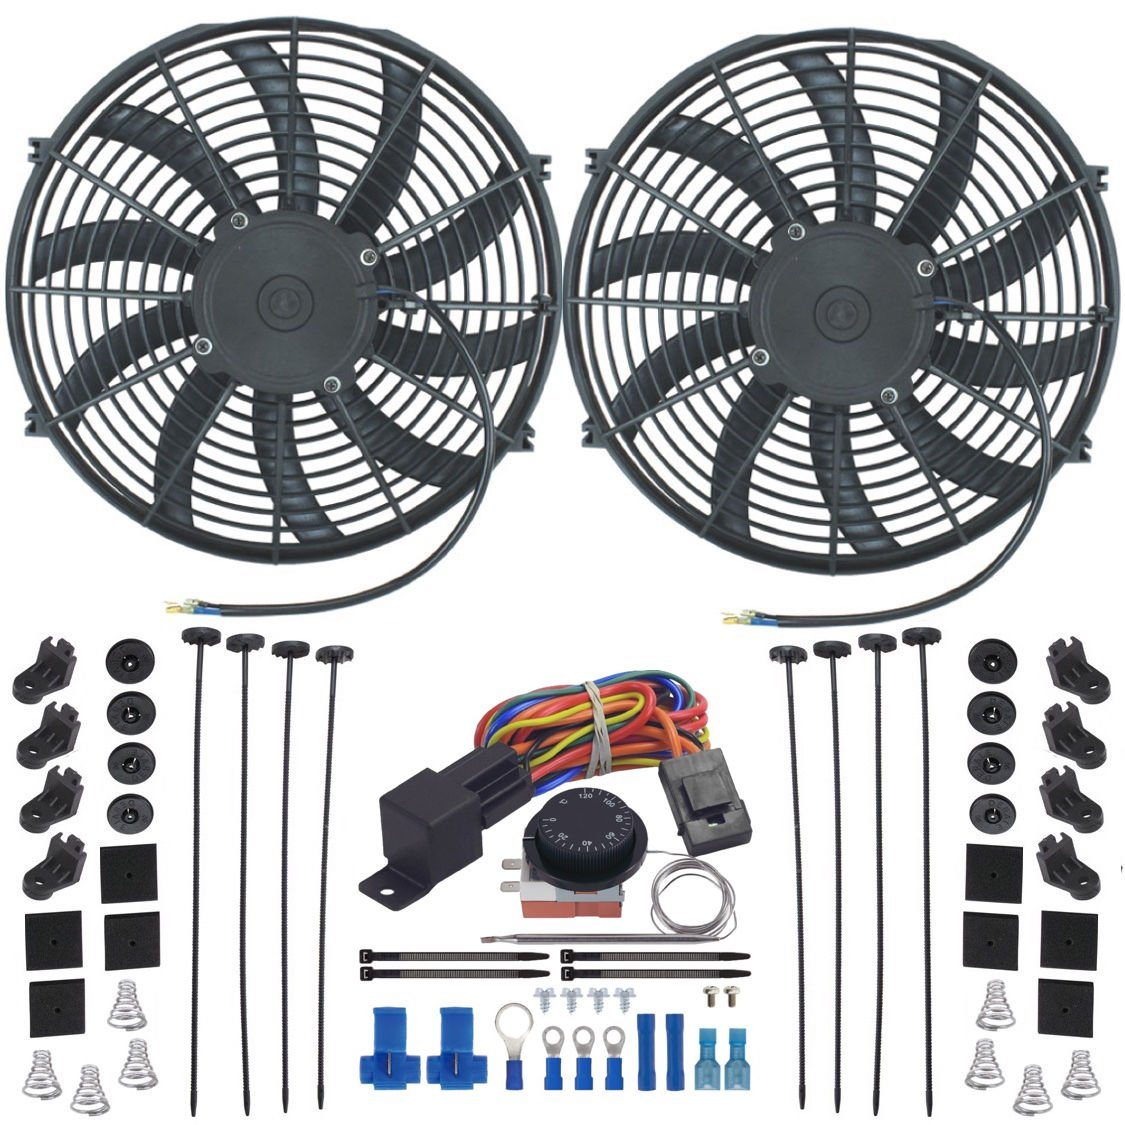 American Volt Dual 14' Inch Electric Radiator Fan-s Adjustable Thermostat Control Switch Kit